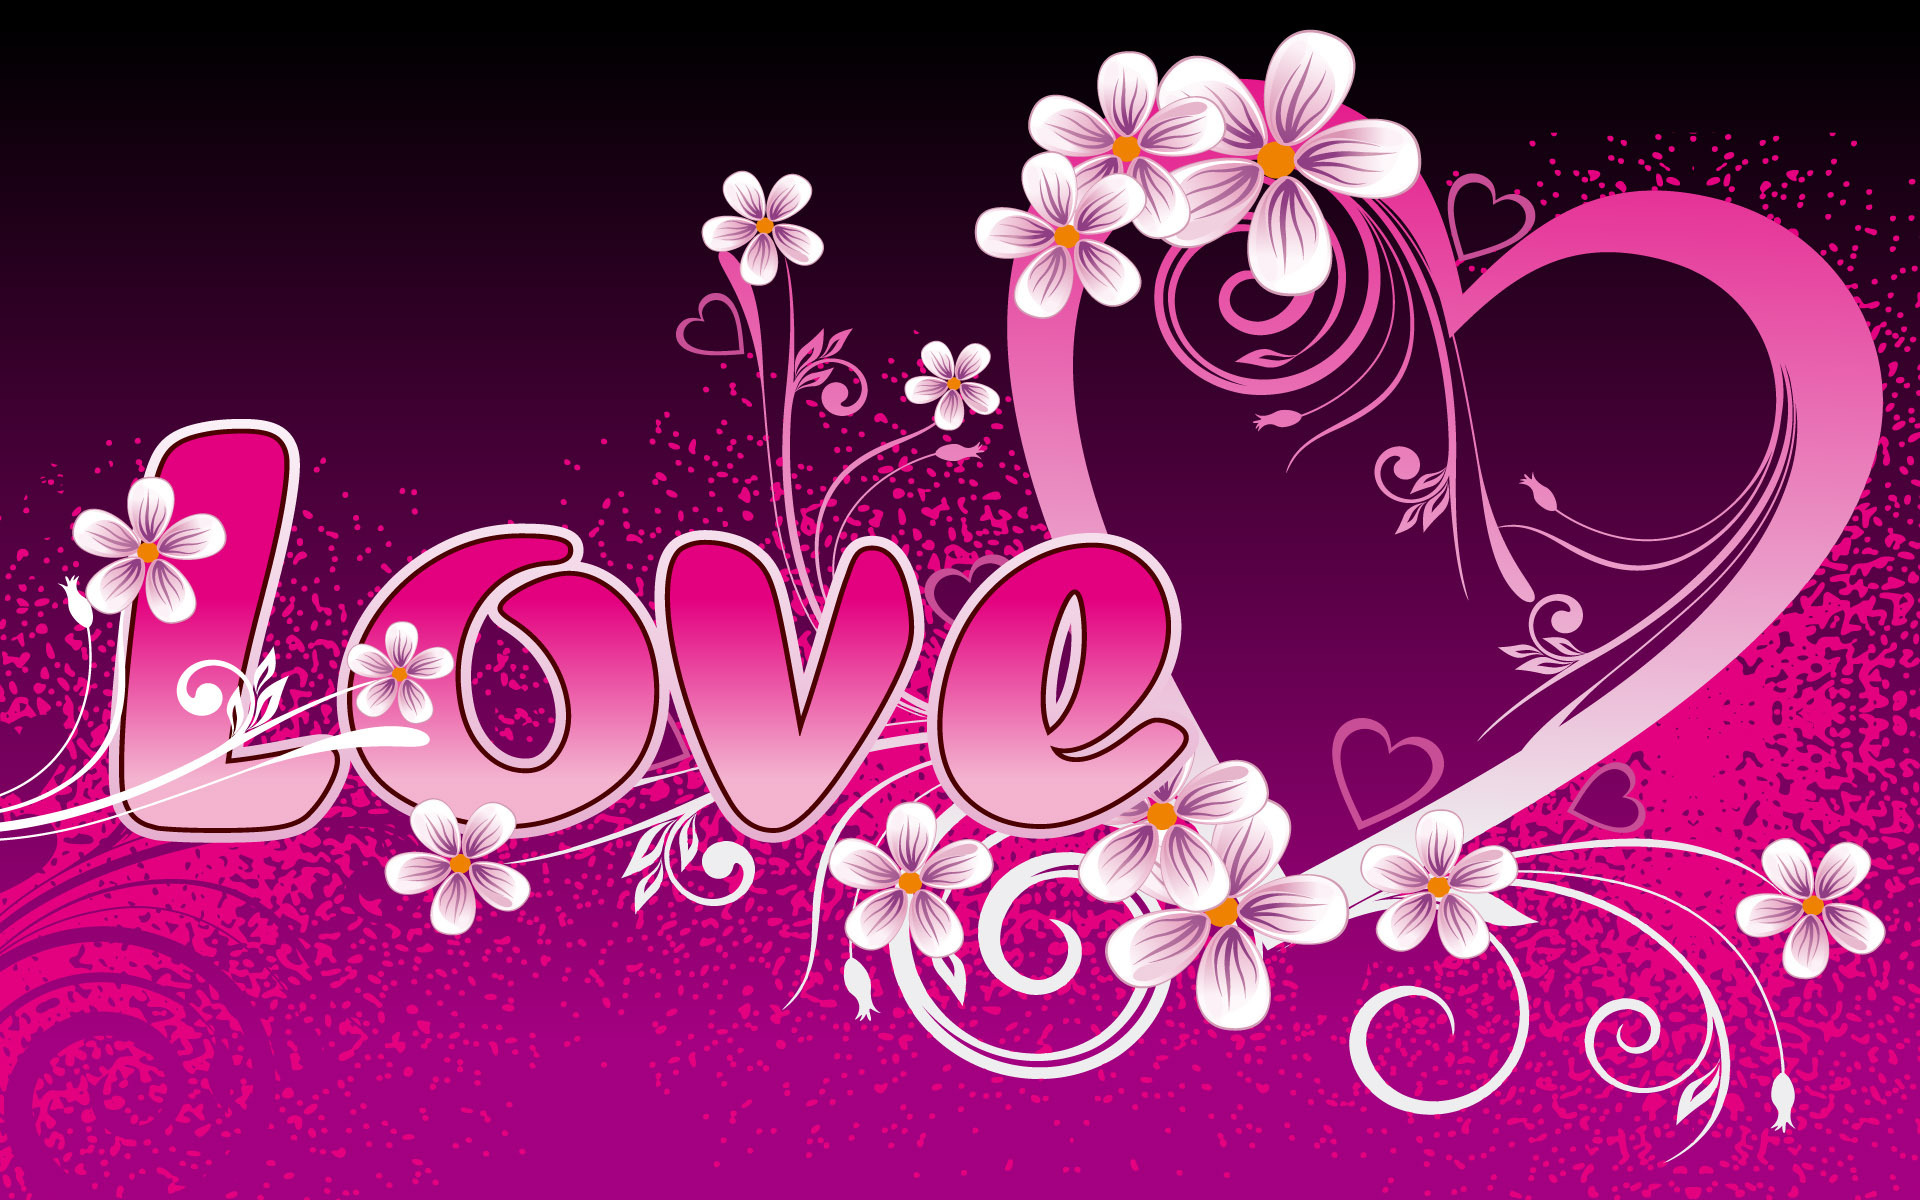 Lover Wallpaper Photo : Love wallpaper - Love Wallpaper (4187641) - Fanpop